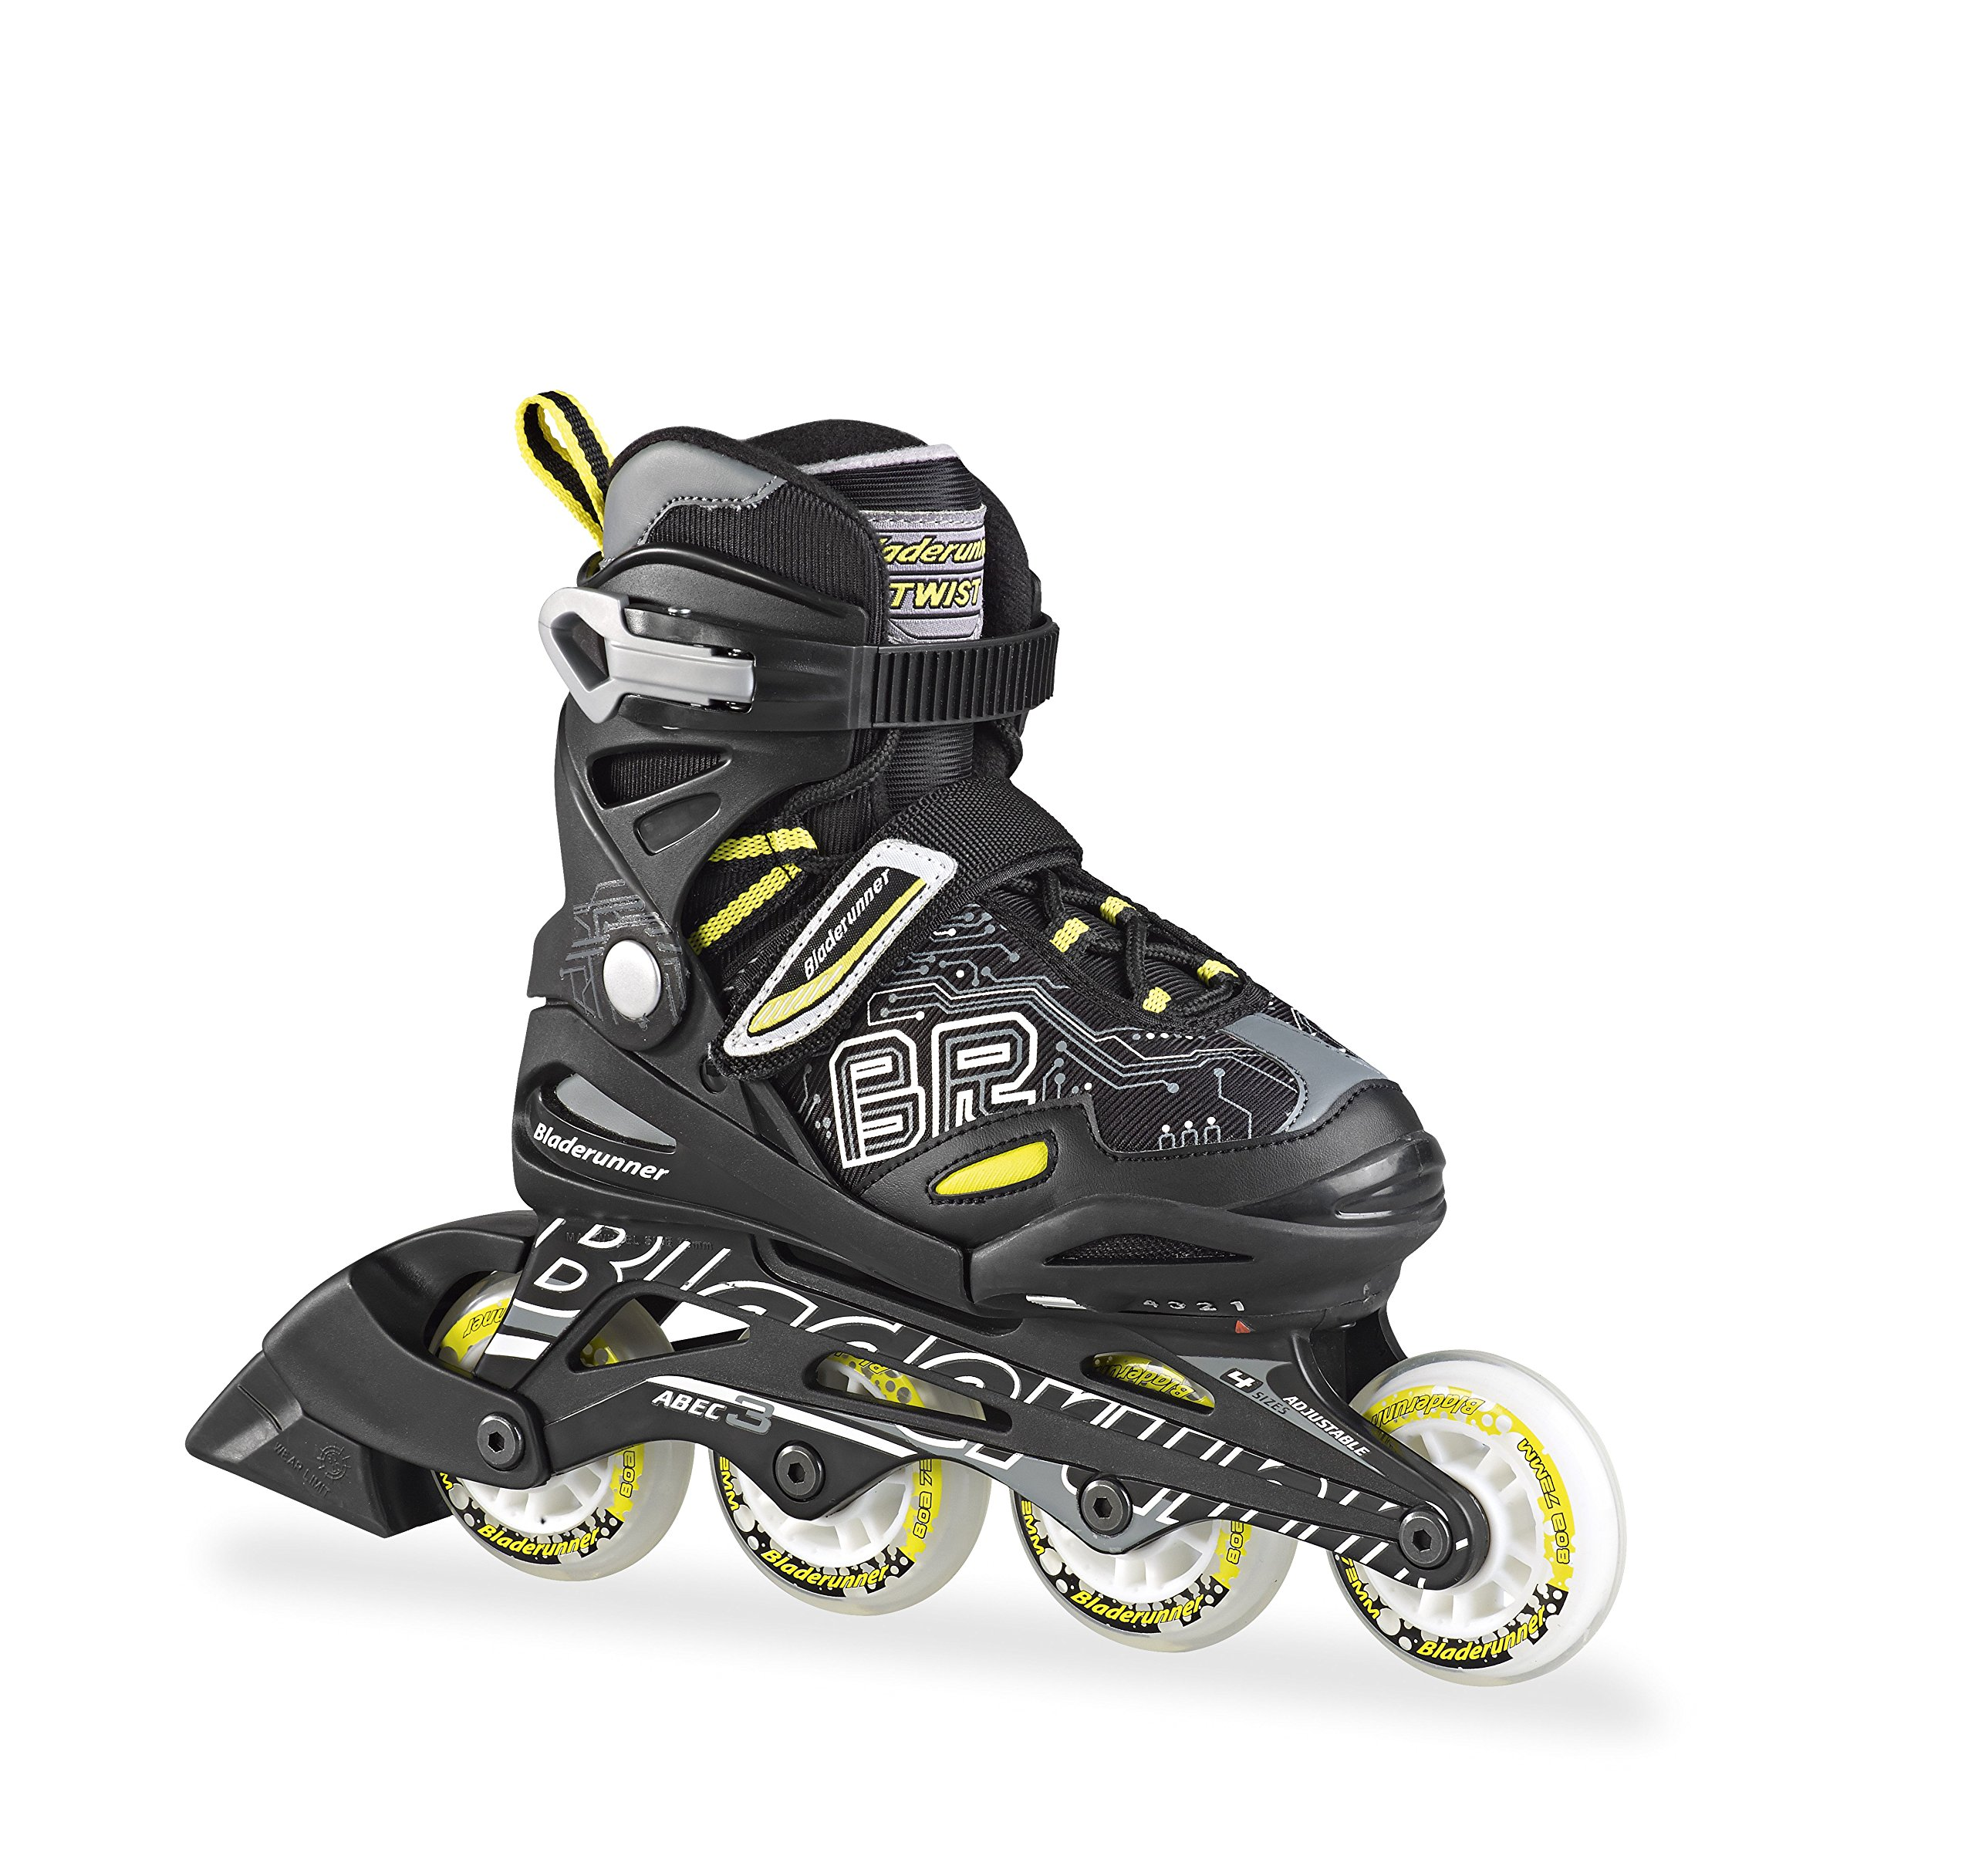 Bladerunner - Twist Junior Adjustable Skate - 4 Sizesper Skate - Black - 5 to 8, 4 Size Adjustable US 5 to 8